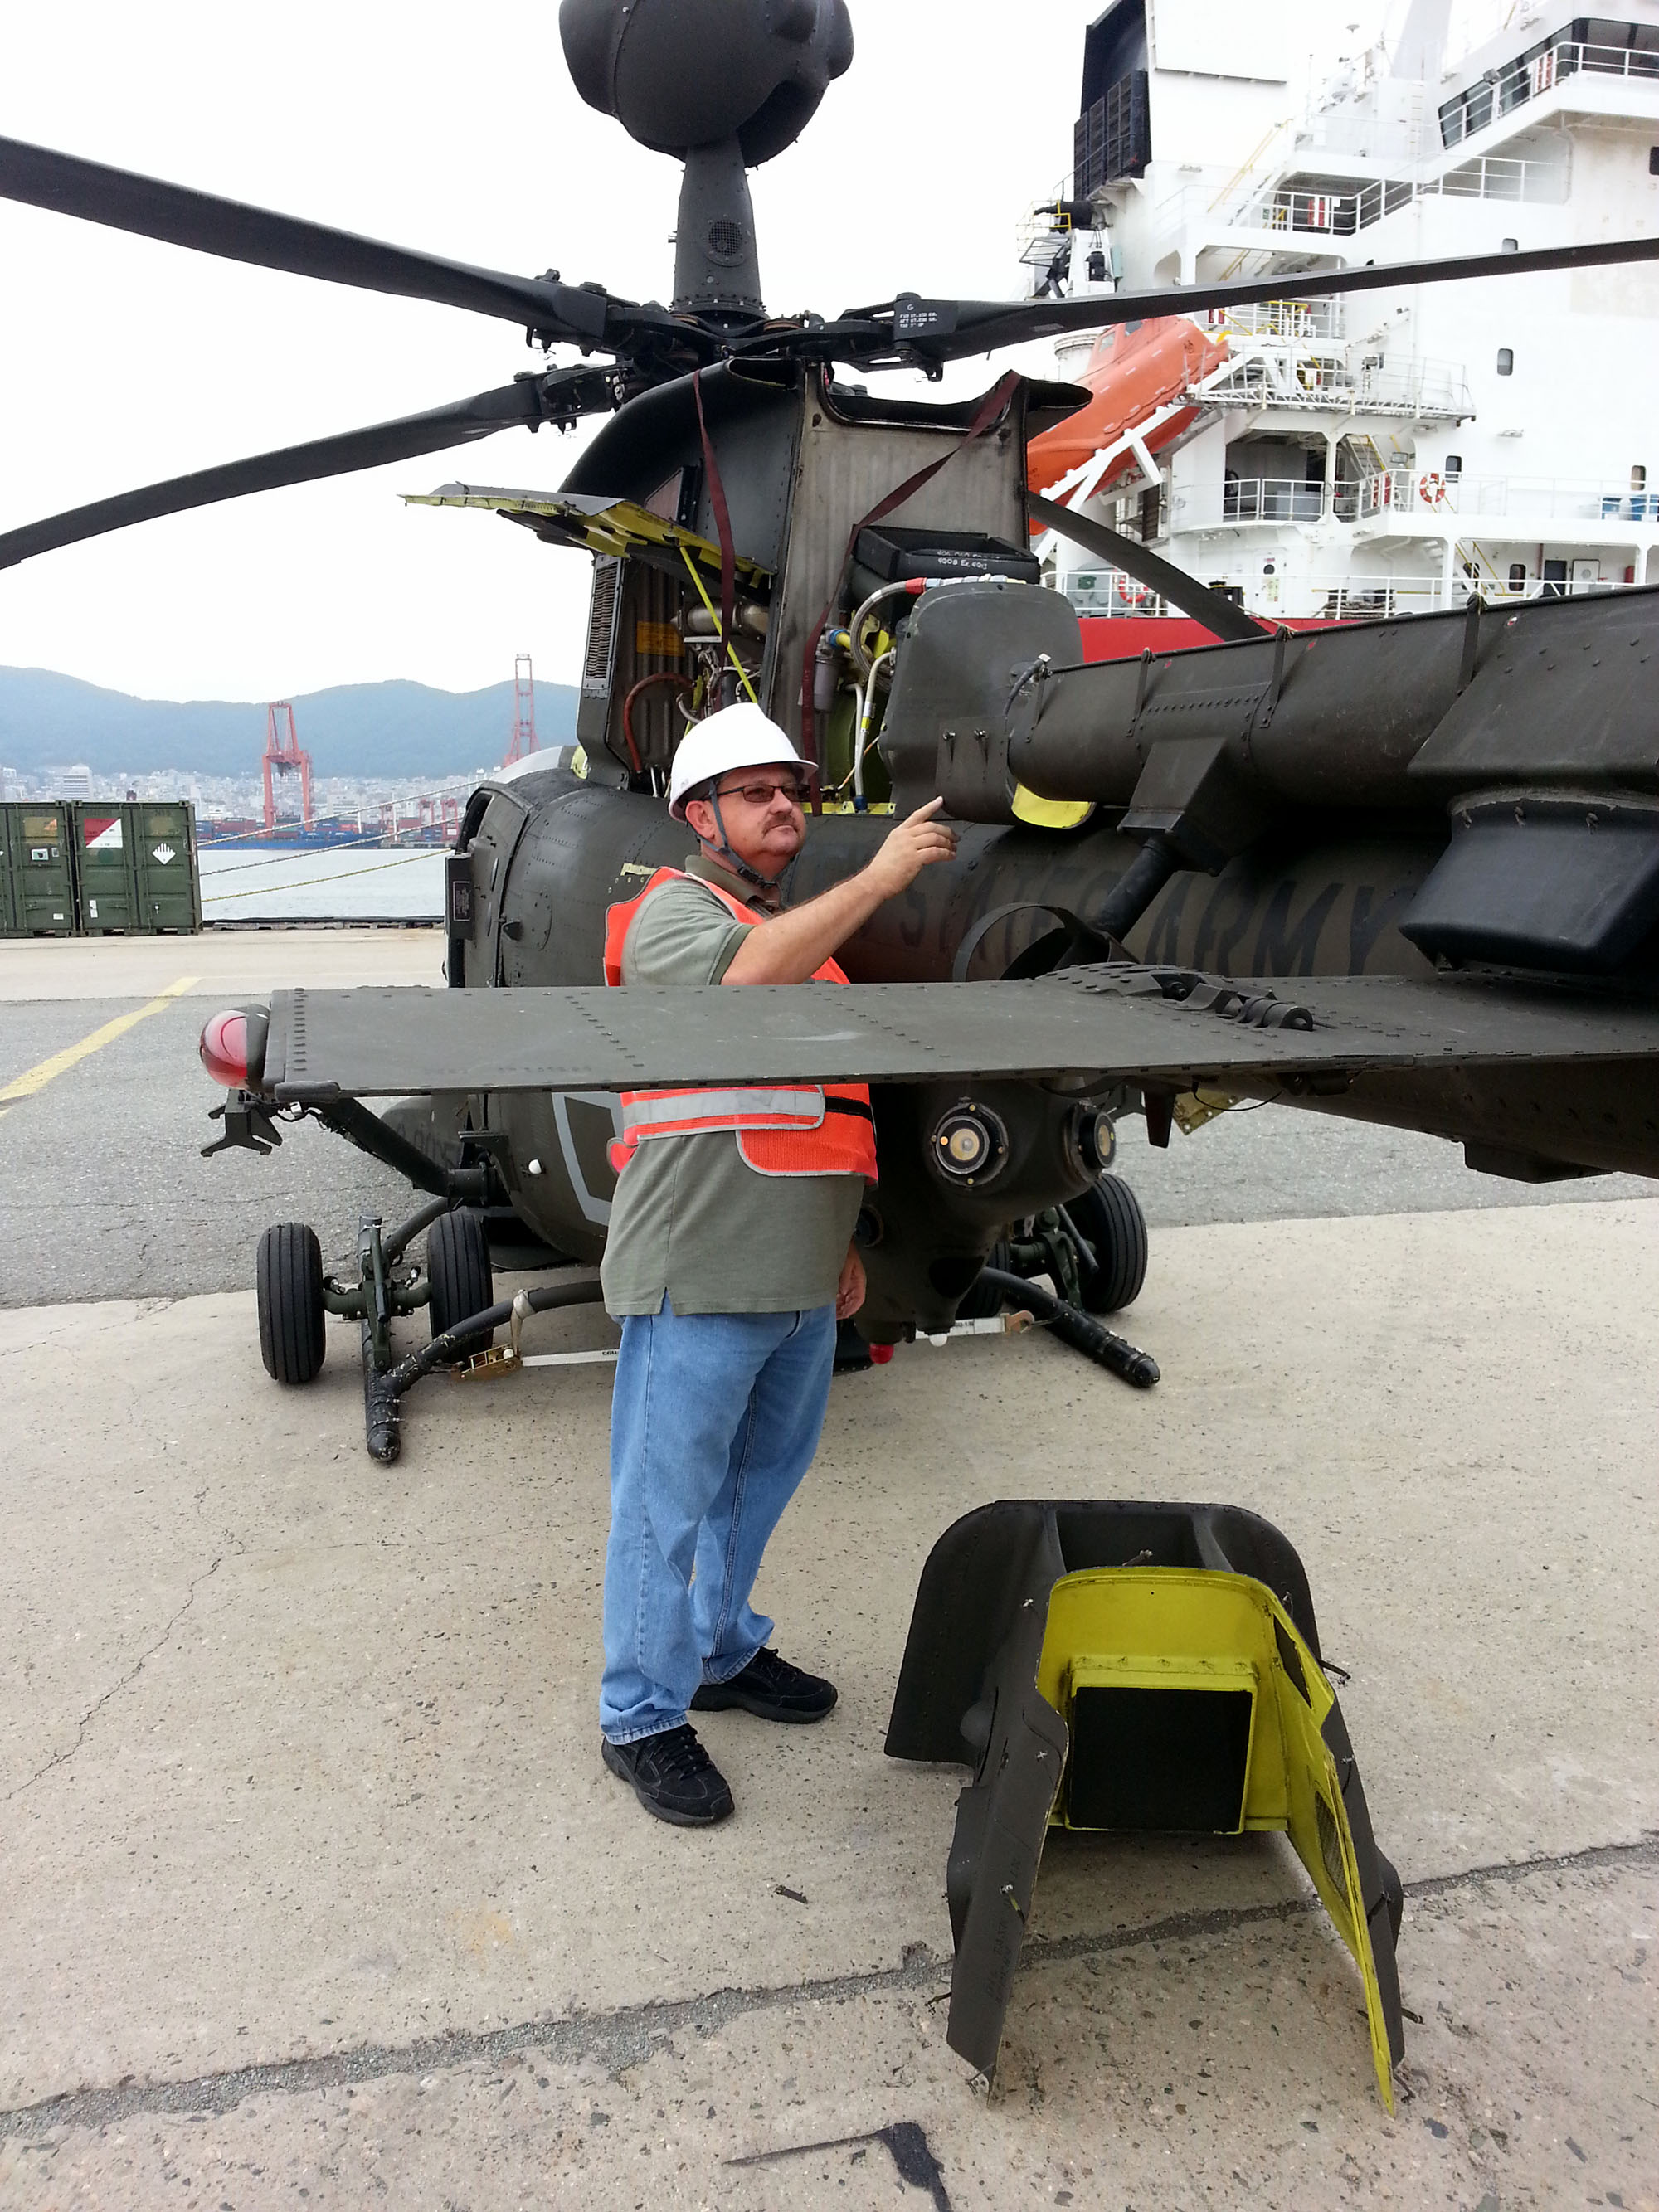 Logistics Support Team inspects an OH-58D Kiowa Warrior helicopter